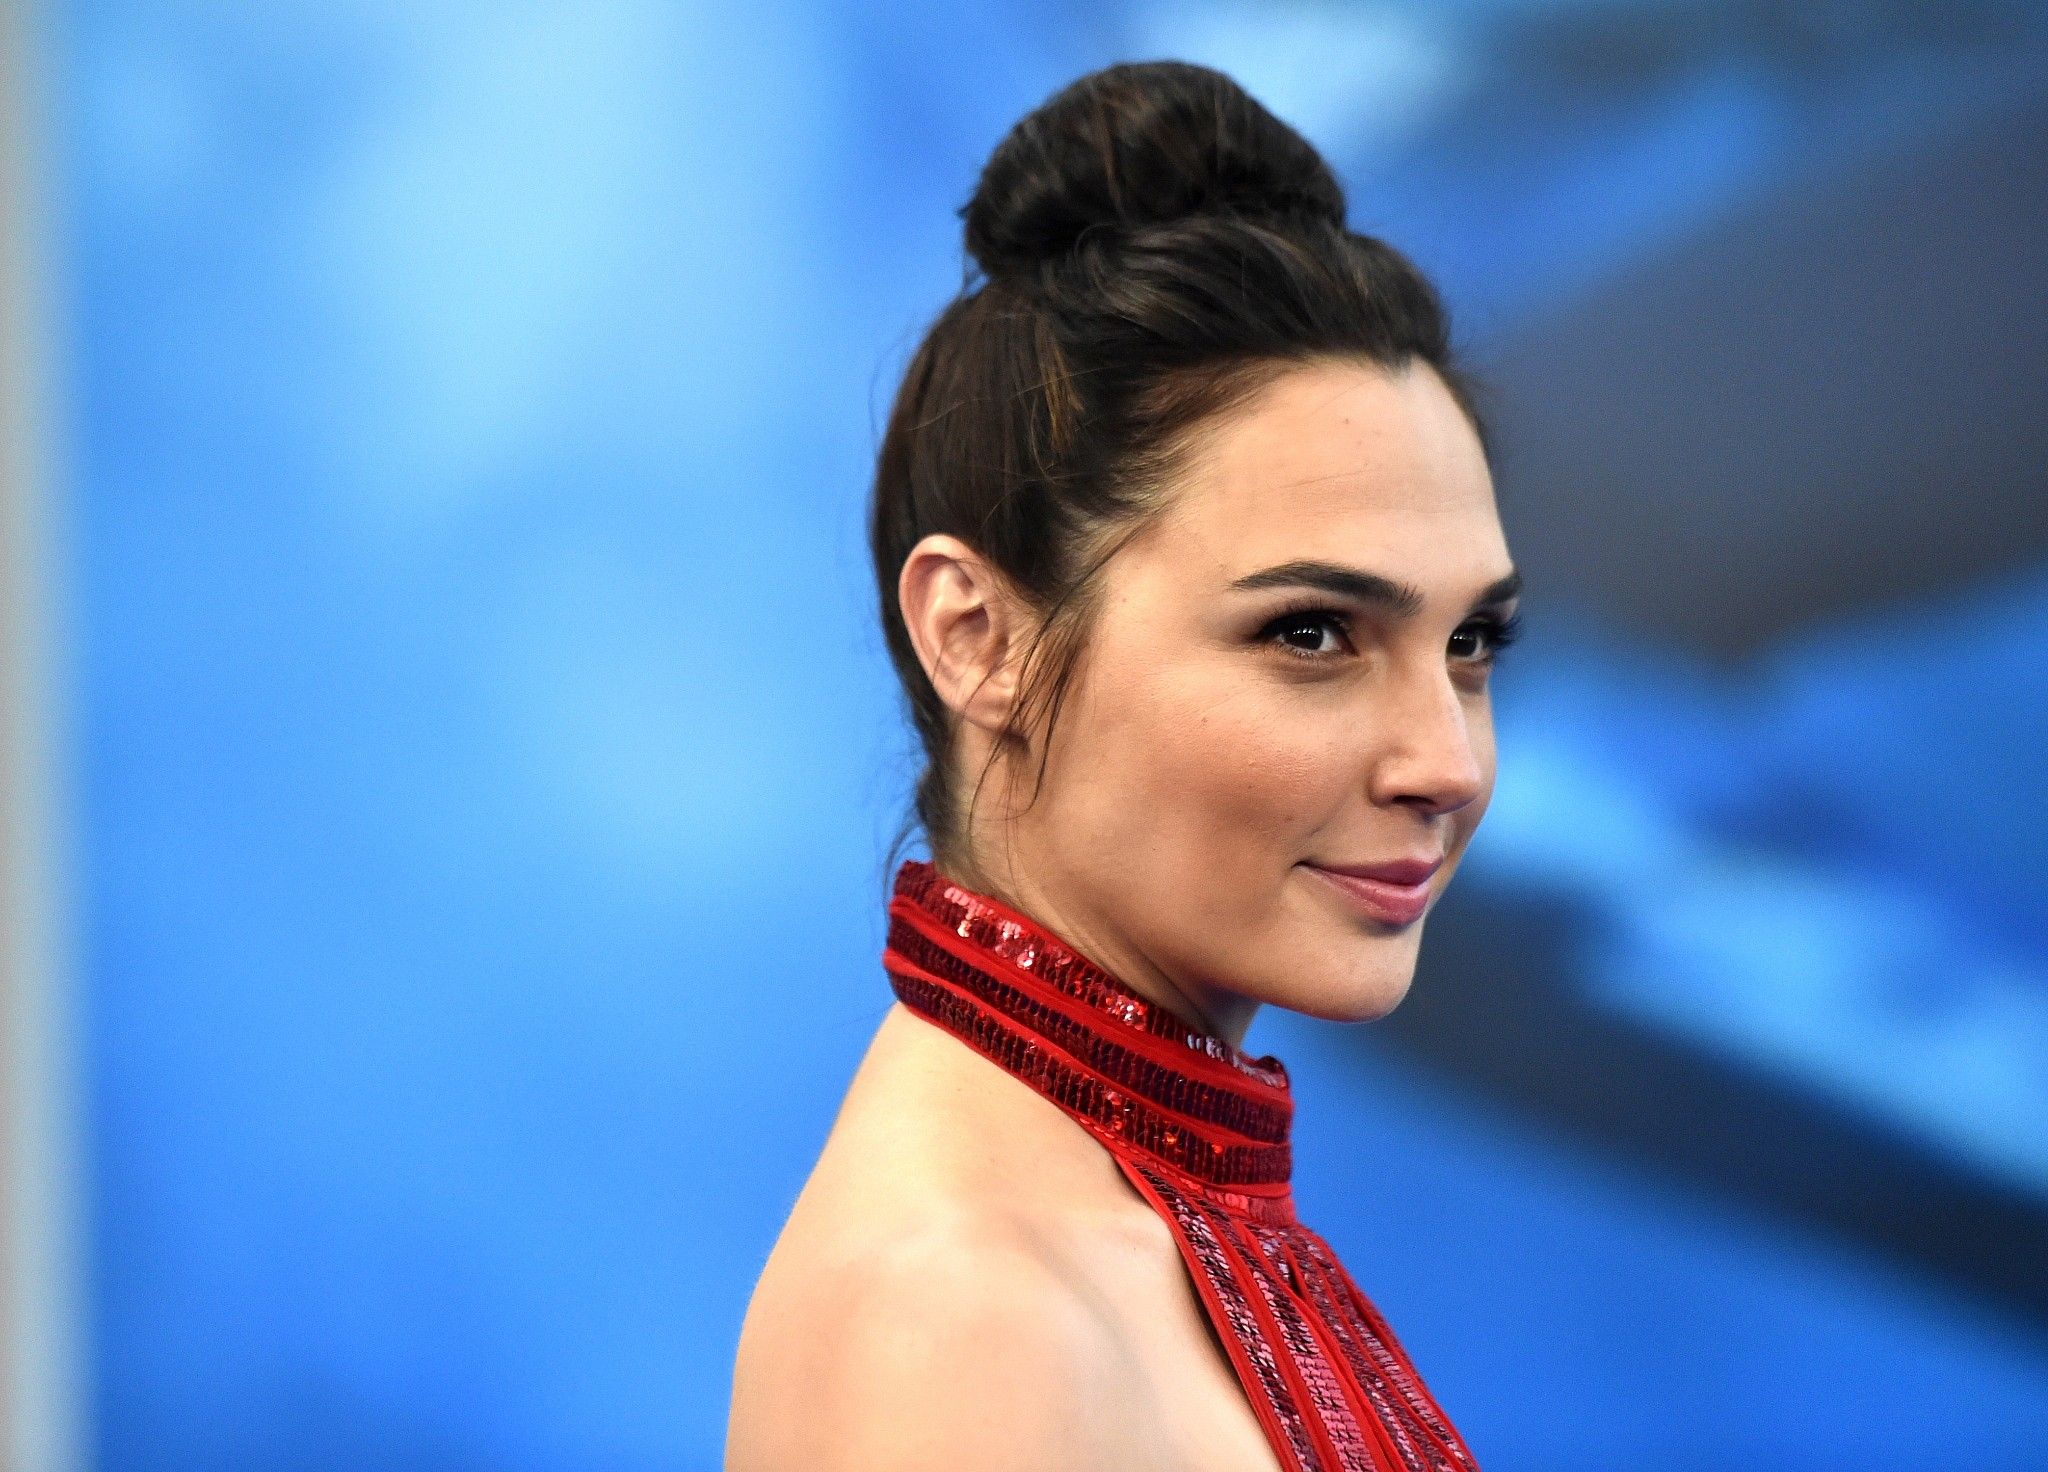 Gal Gadot at the 'Wonder Woman' premiere at the Pantages Theatre in Hollywood California